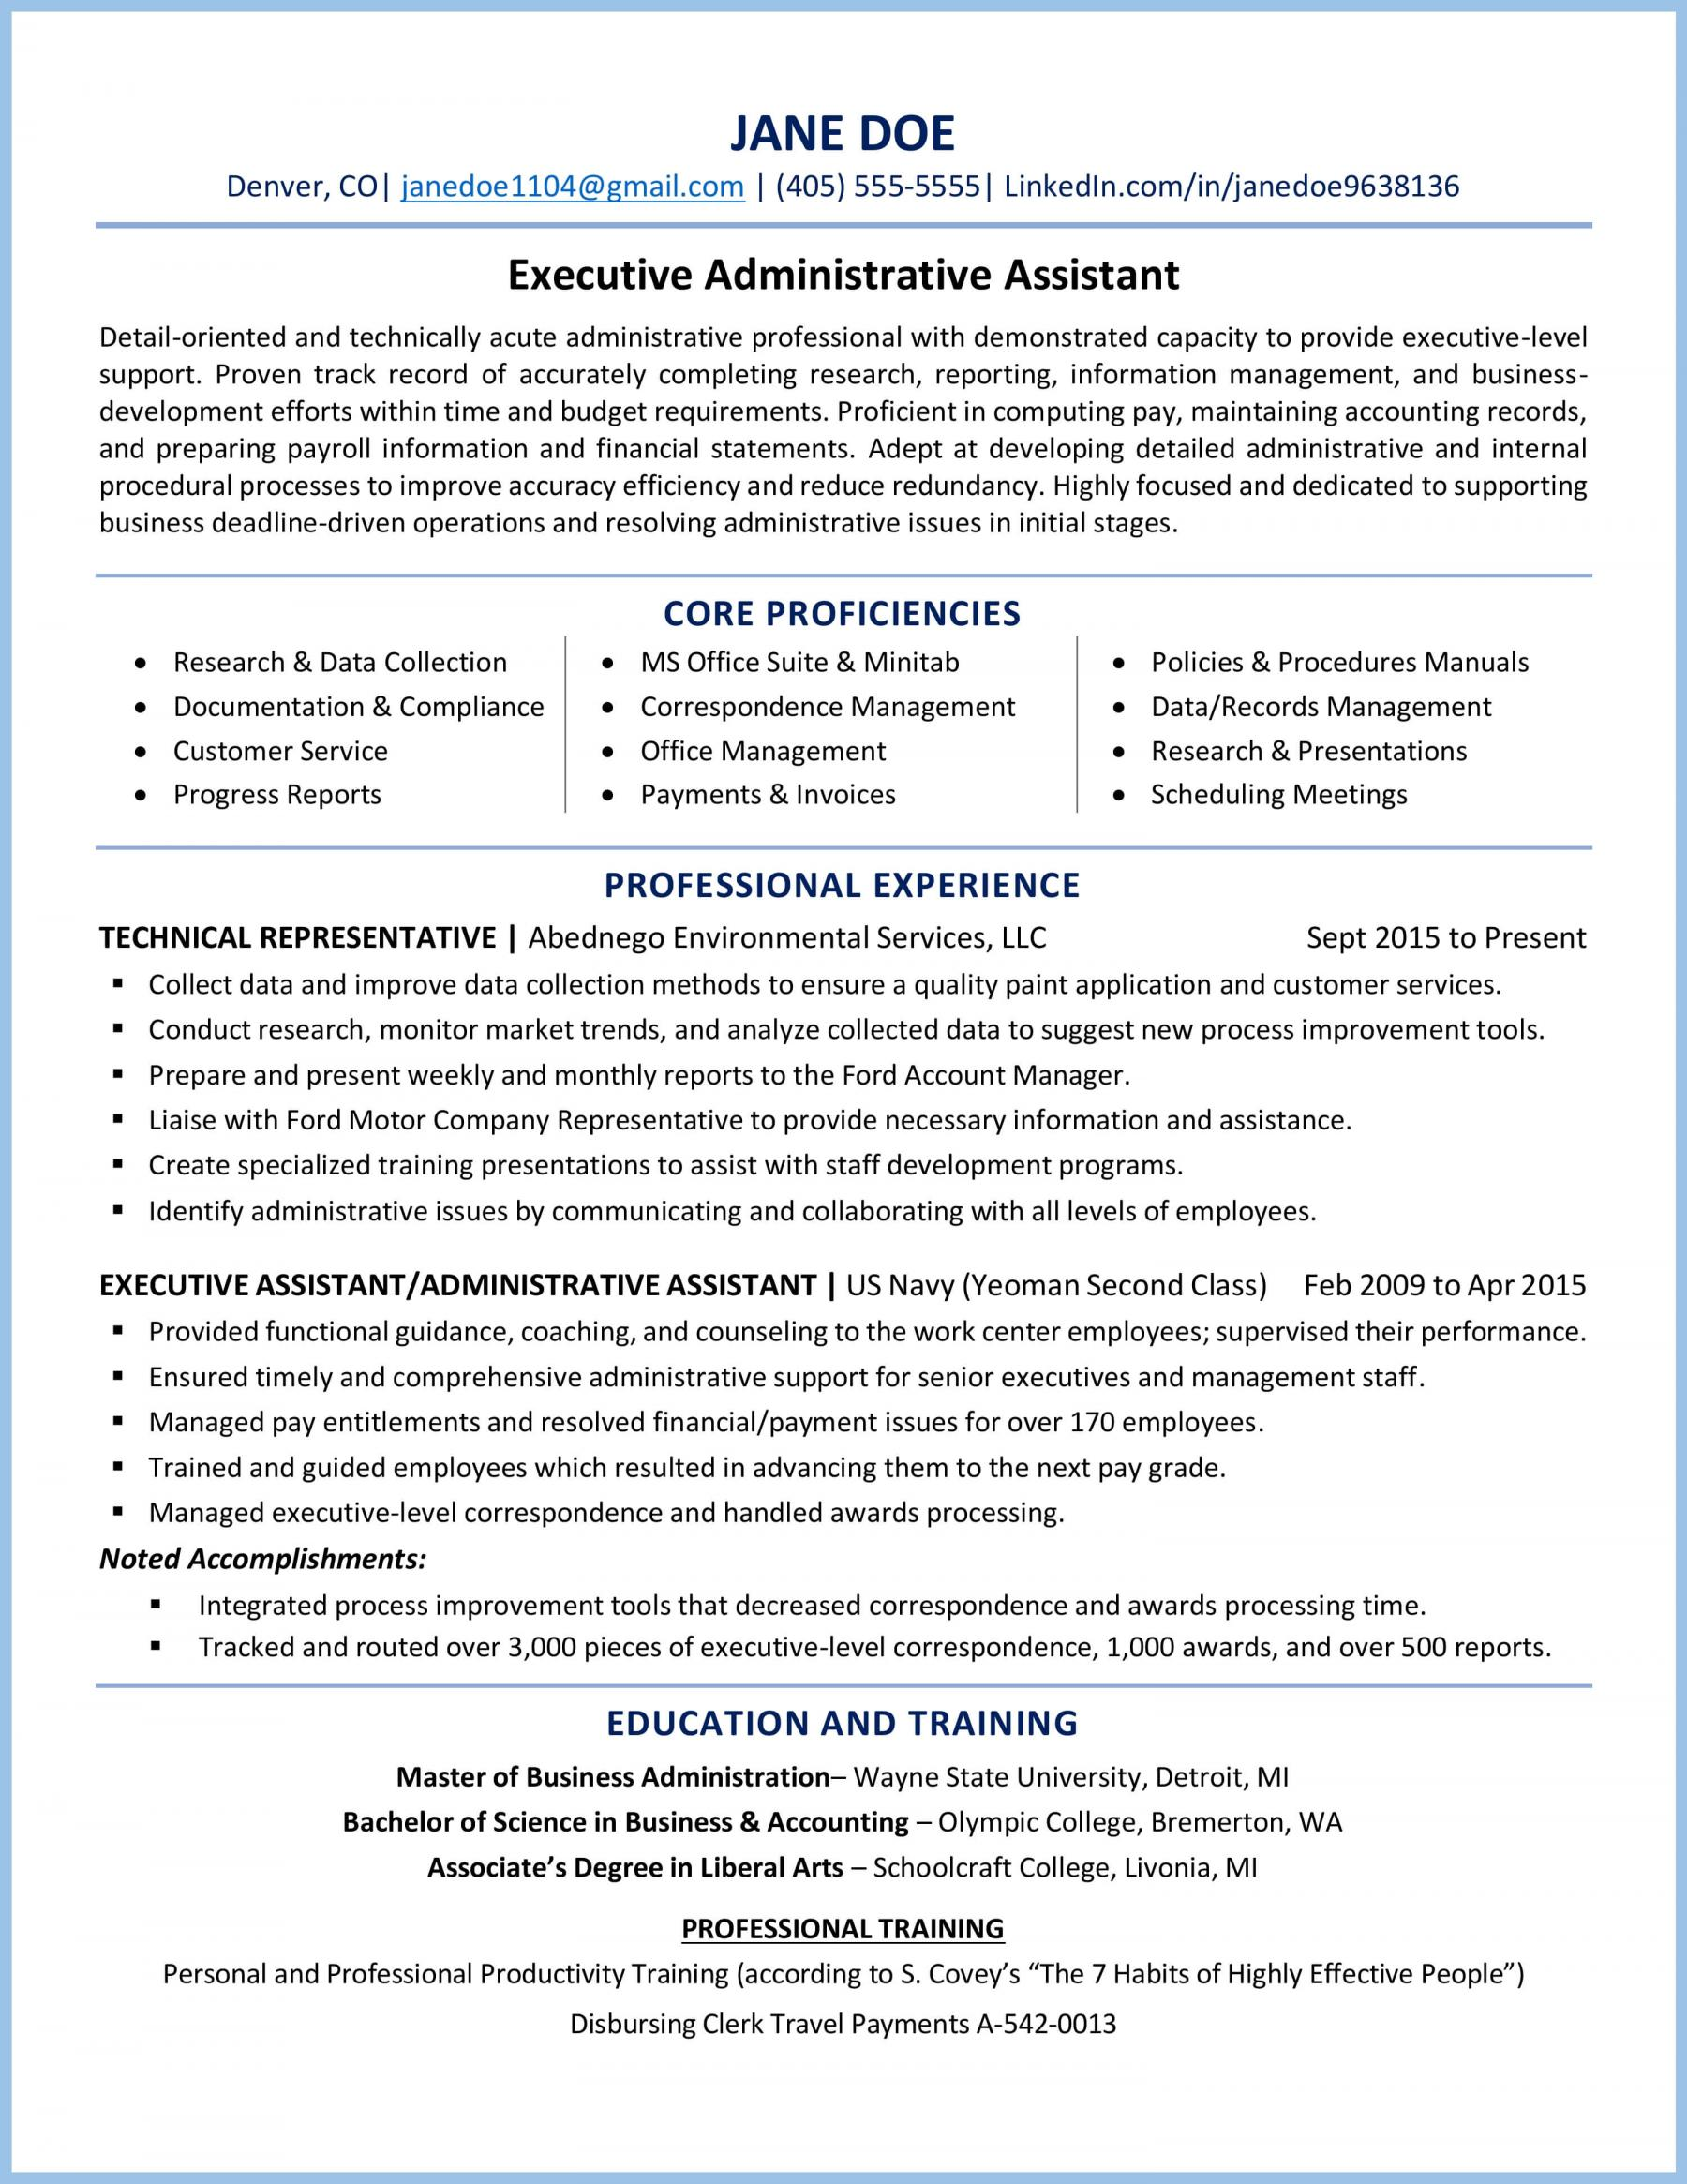 executive administrative assistant resume example dht5rqzz0ssie0qvhbnj headline for data Resume Executive Administrative Assistant Resume